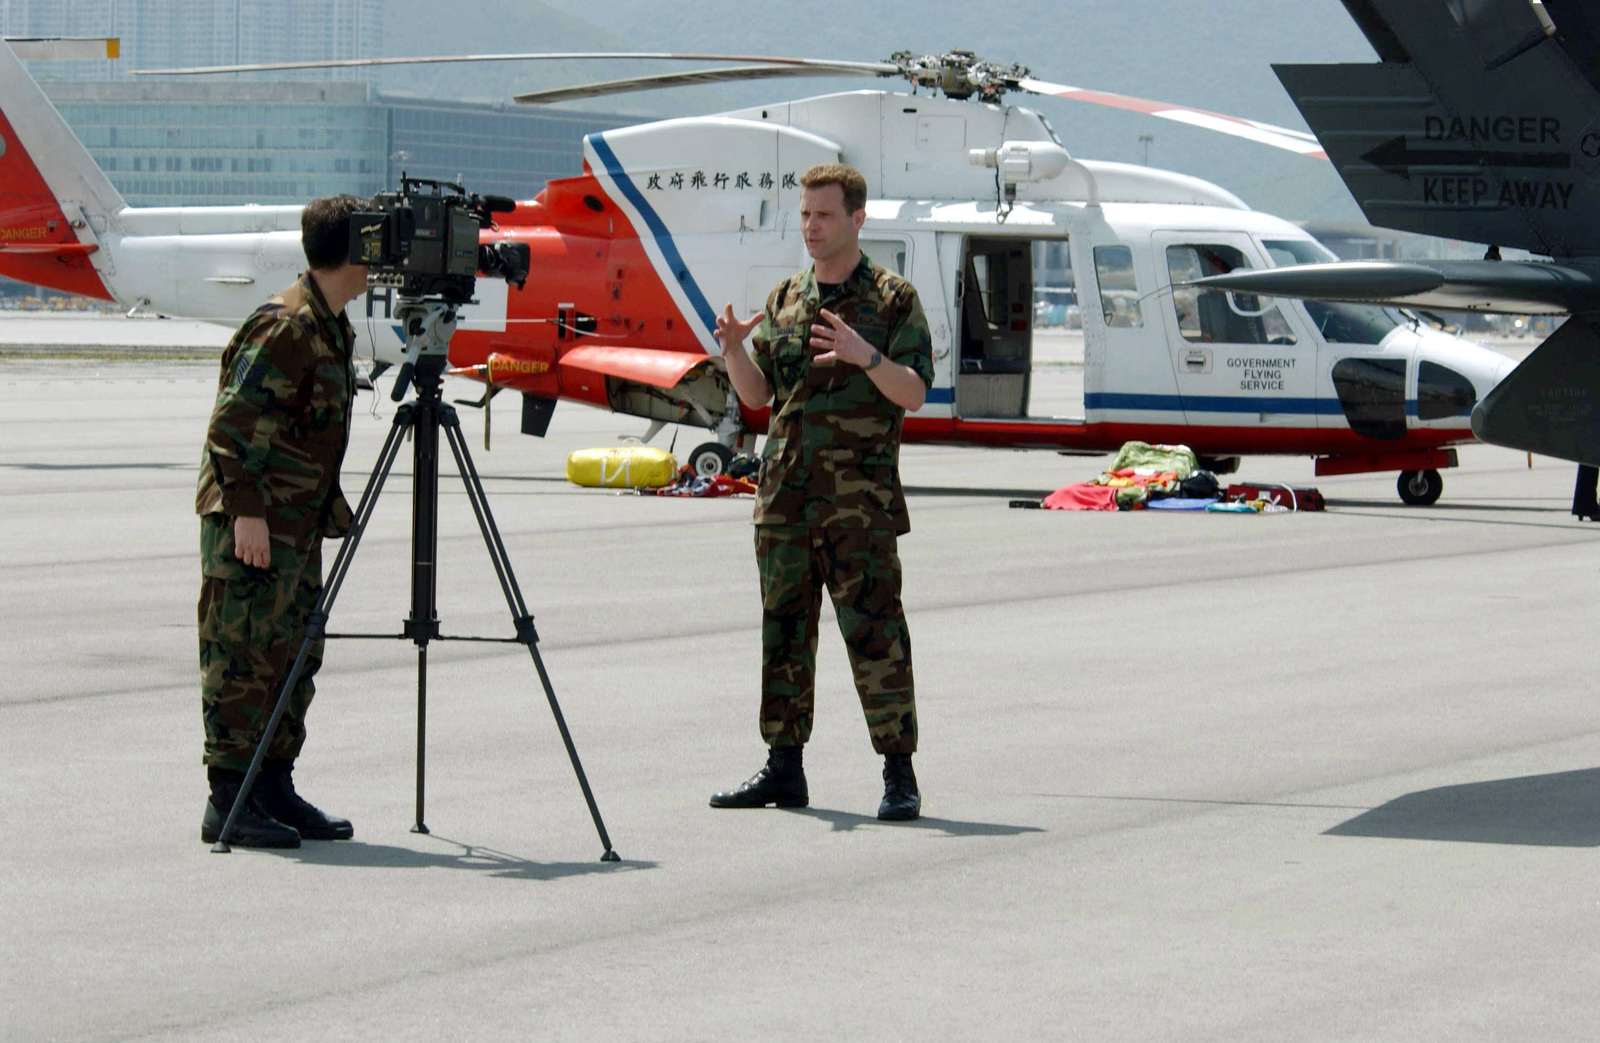 US Air Force (USAF) Technical Sergeant (TSGT) Mark Hatfield (left) uses a video camera to record USAF STAFF Sergeant (SSGT) Michael Brogan, during a stand-up interview on the flight line at Hong Kong International Airport. TSGT Hatfield and SSGT Brogan are both assigned to Detachment 10 American Forces Network-Tokyo, Yokota Air Base, Japan, and are covering the annual Hong Kong Search and Rescue Exercise. A Japan Self Defense Force (JASDF) UH-60J Search and Rescue helicopter is parked in the background